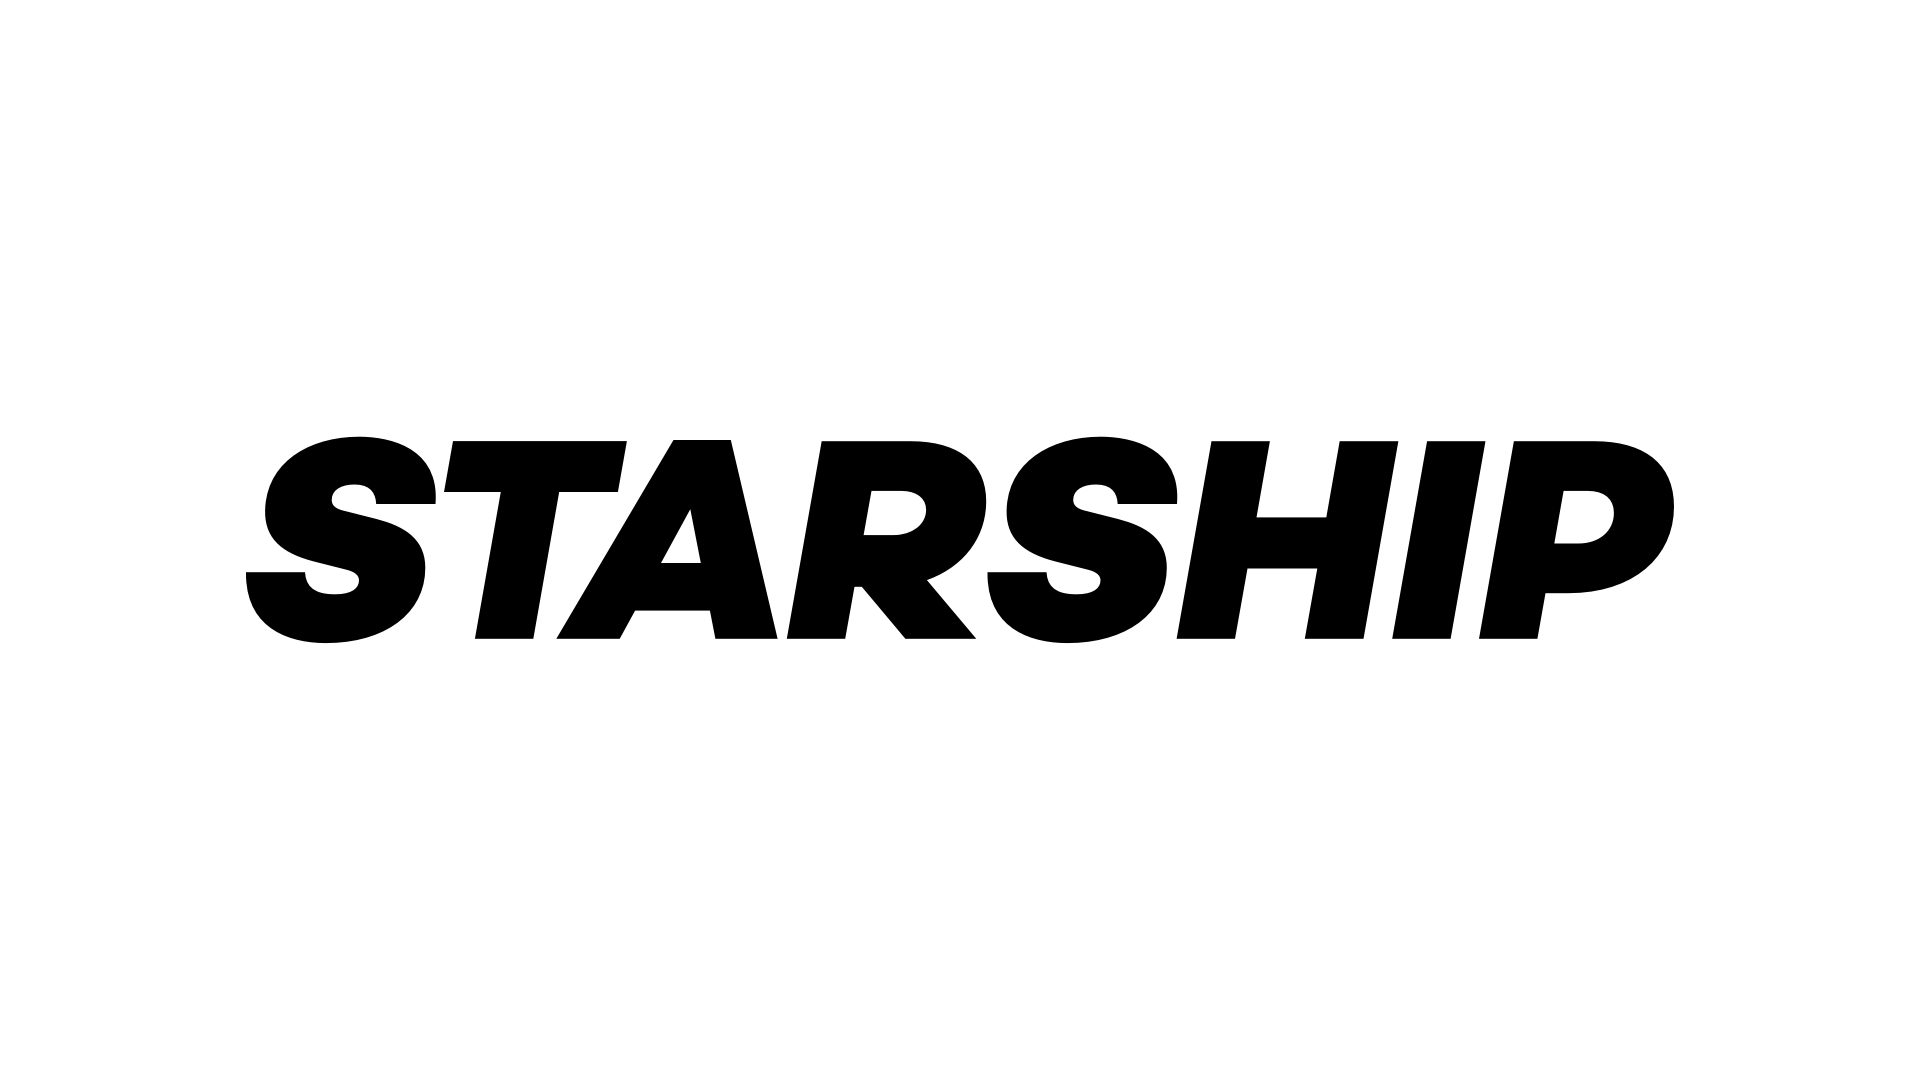 Starship logo black